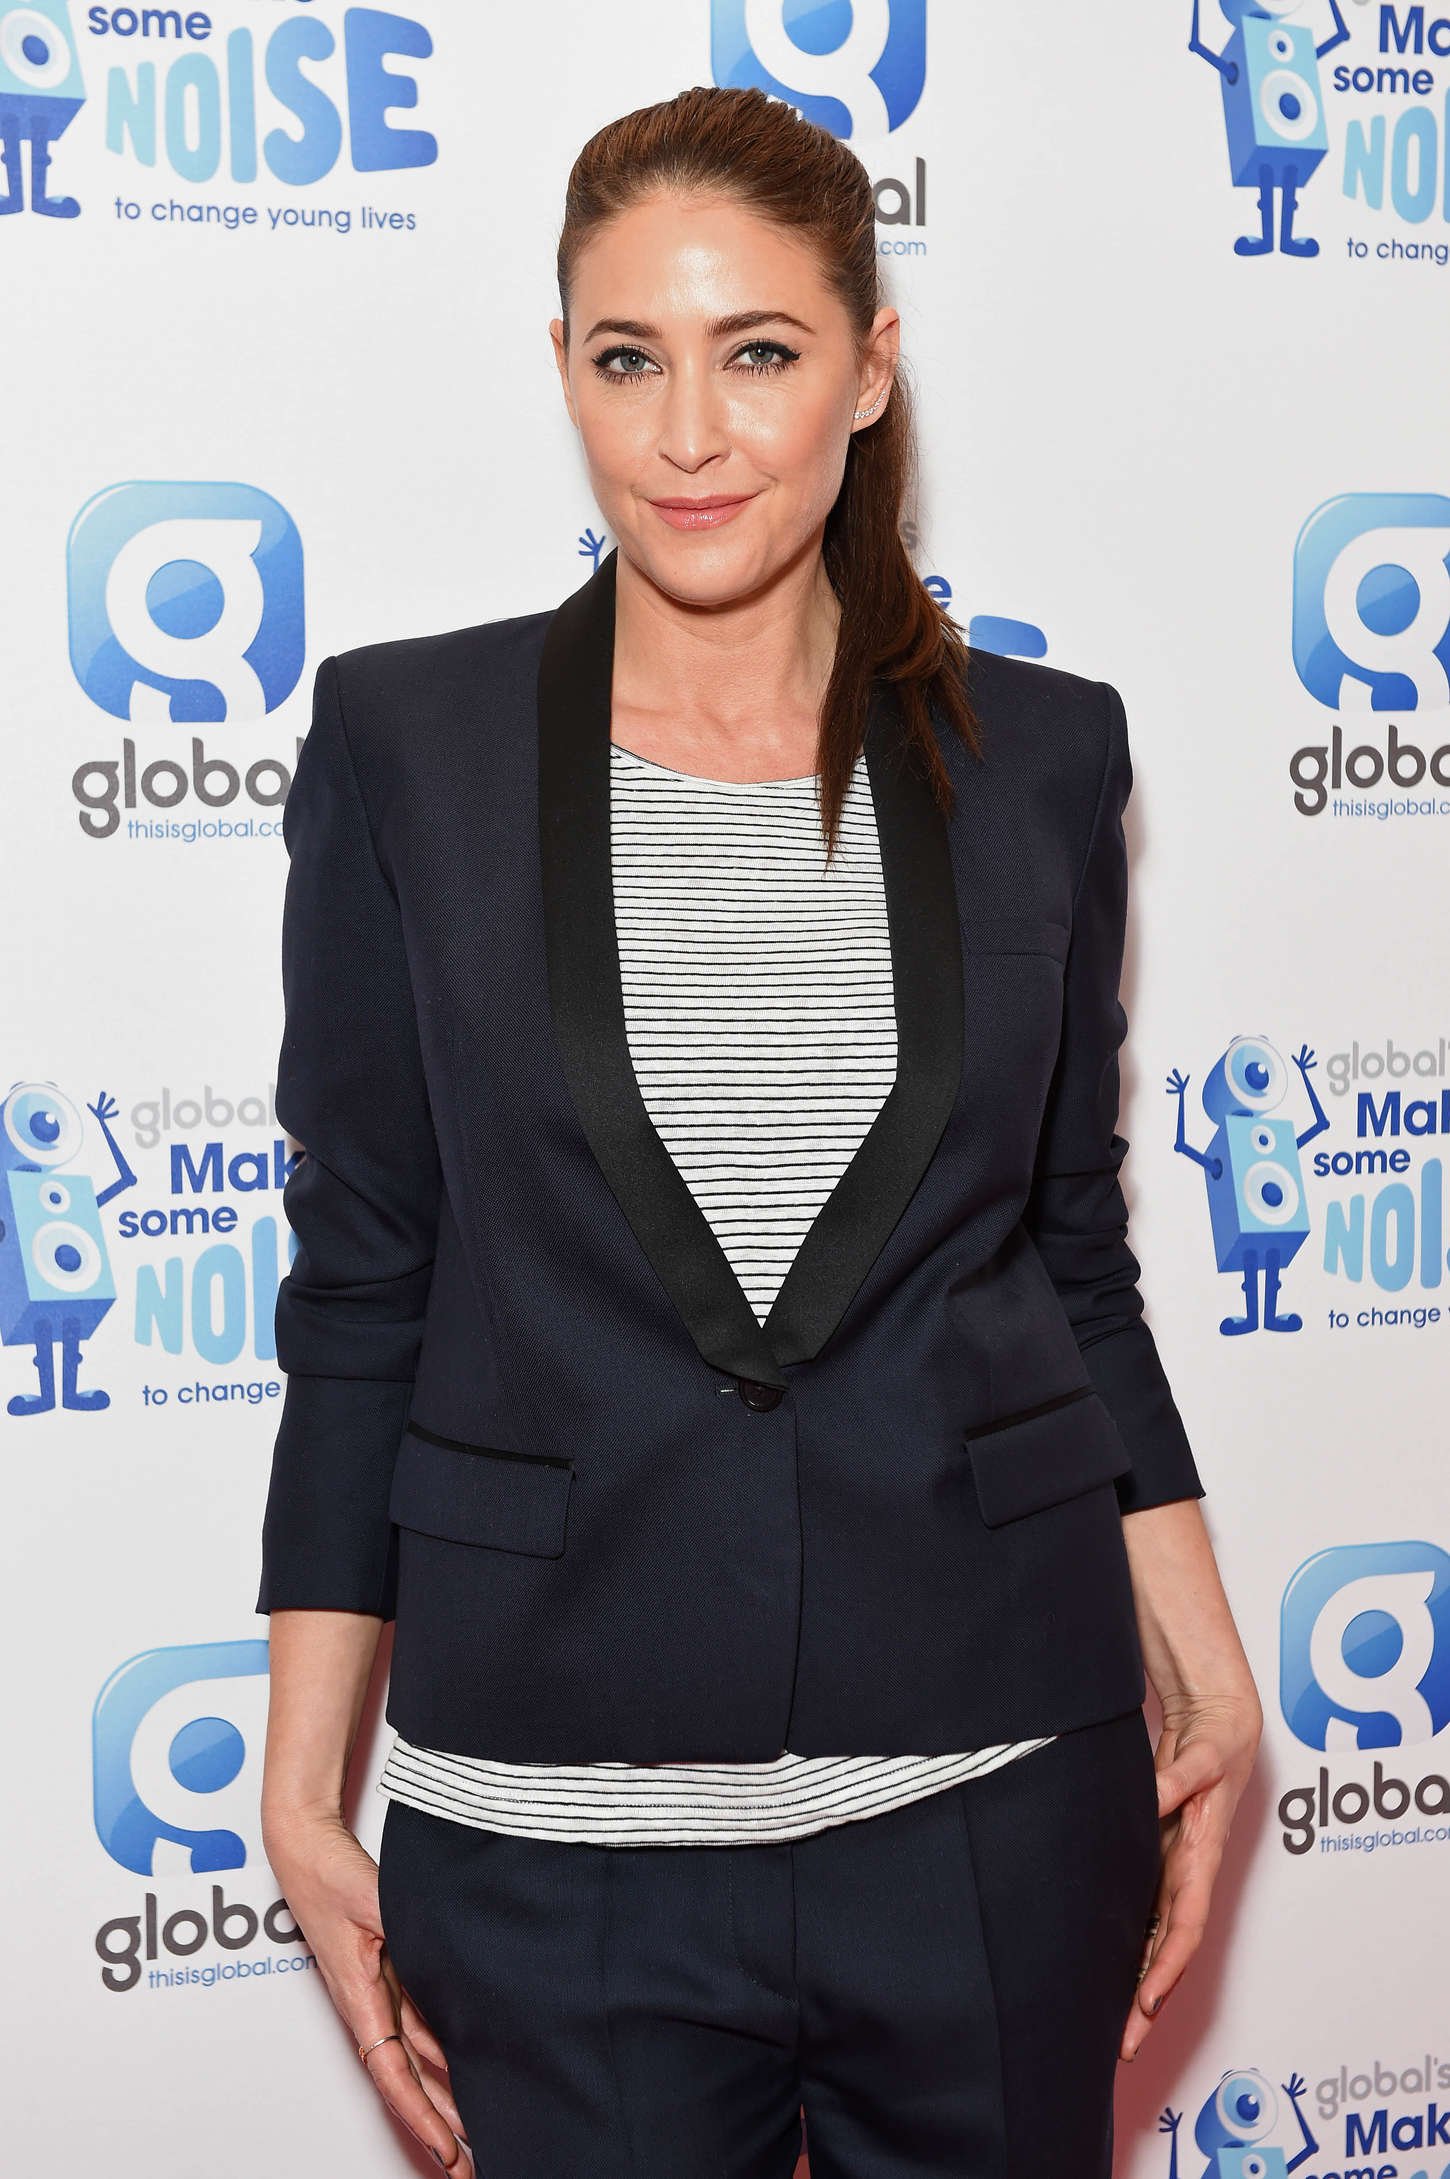 Lisa Snowdon Global Make Some Noise Event in London